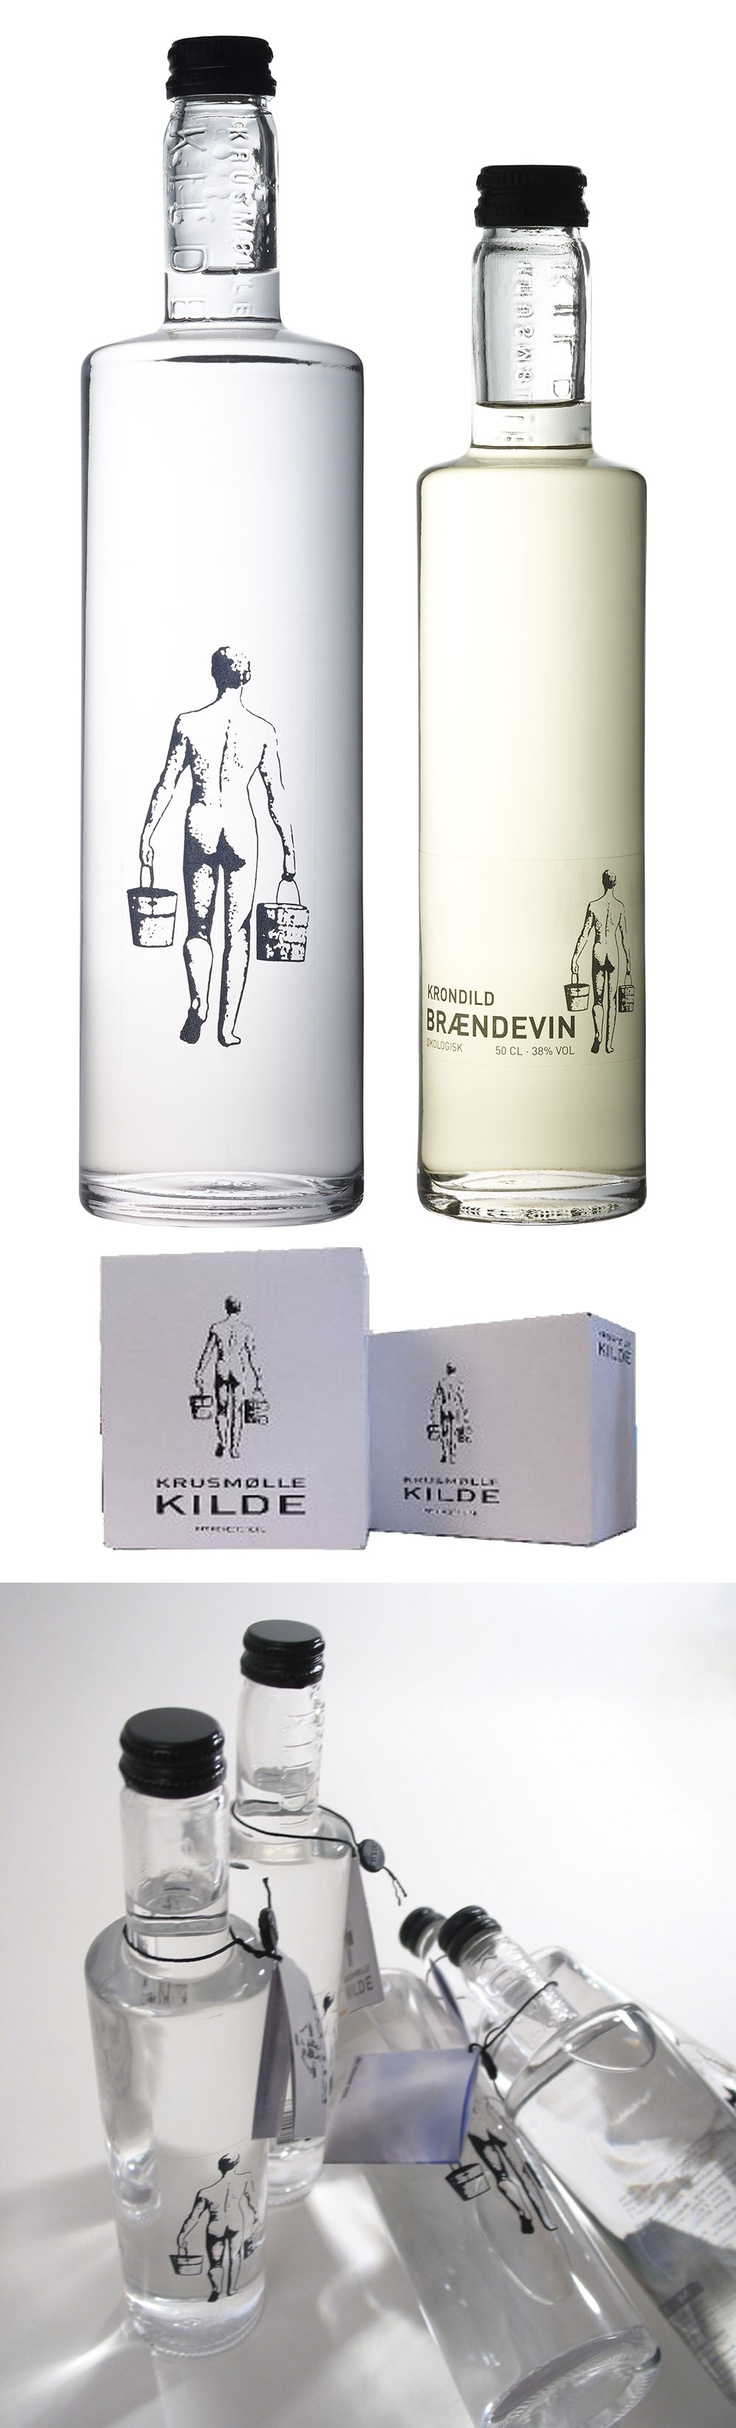 "Krusmølle Kilde Bottled Water from Denmark. Someone repinned this from my ""water"" board. I'd forgotten about it : ) PD"